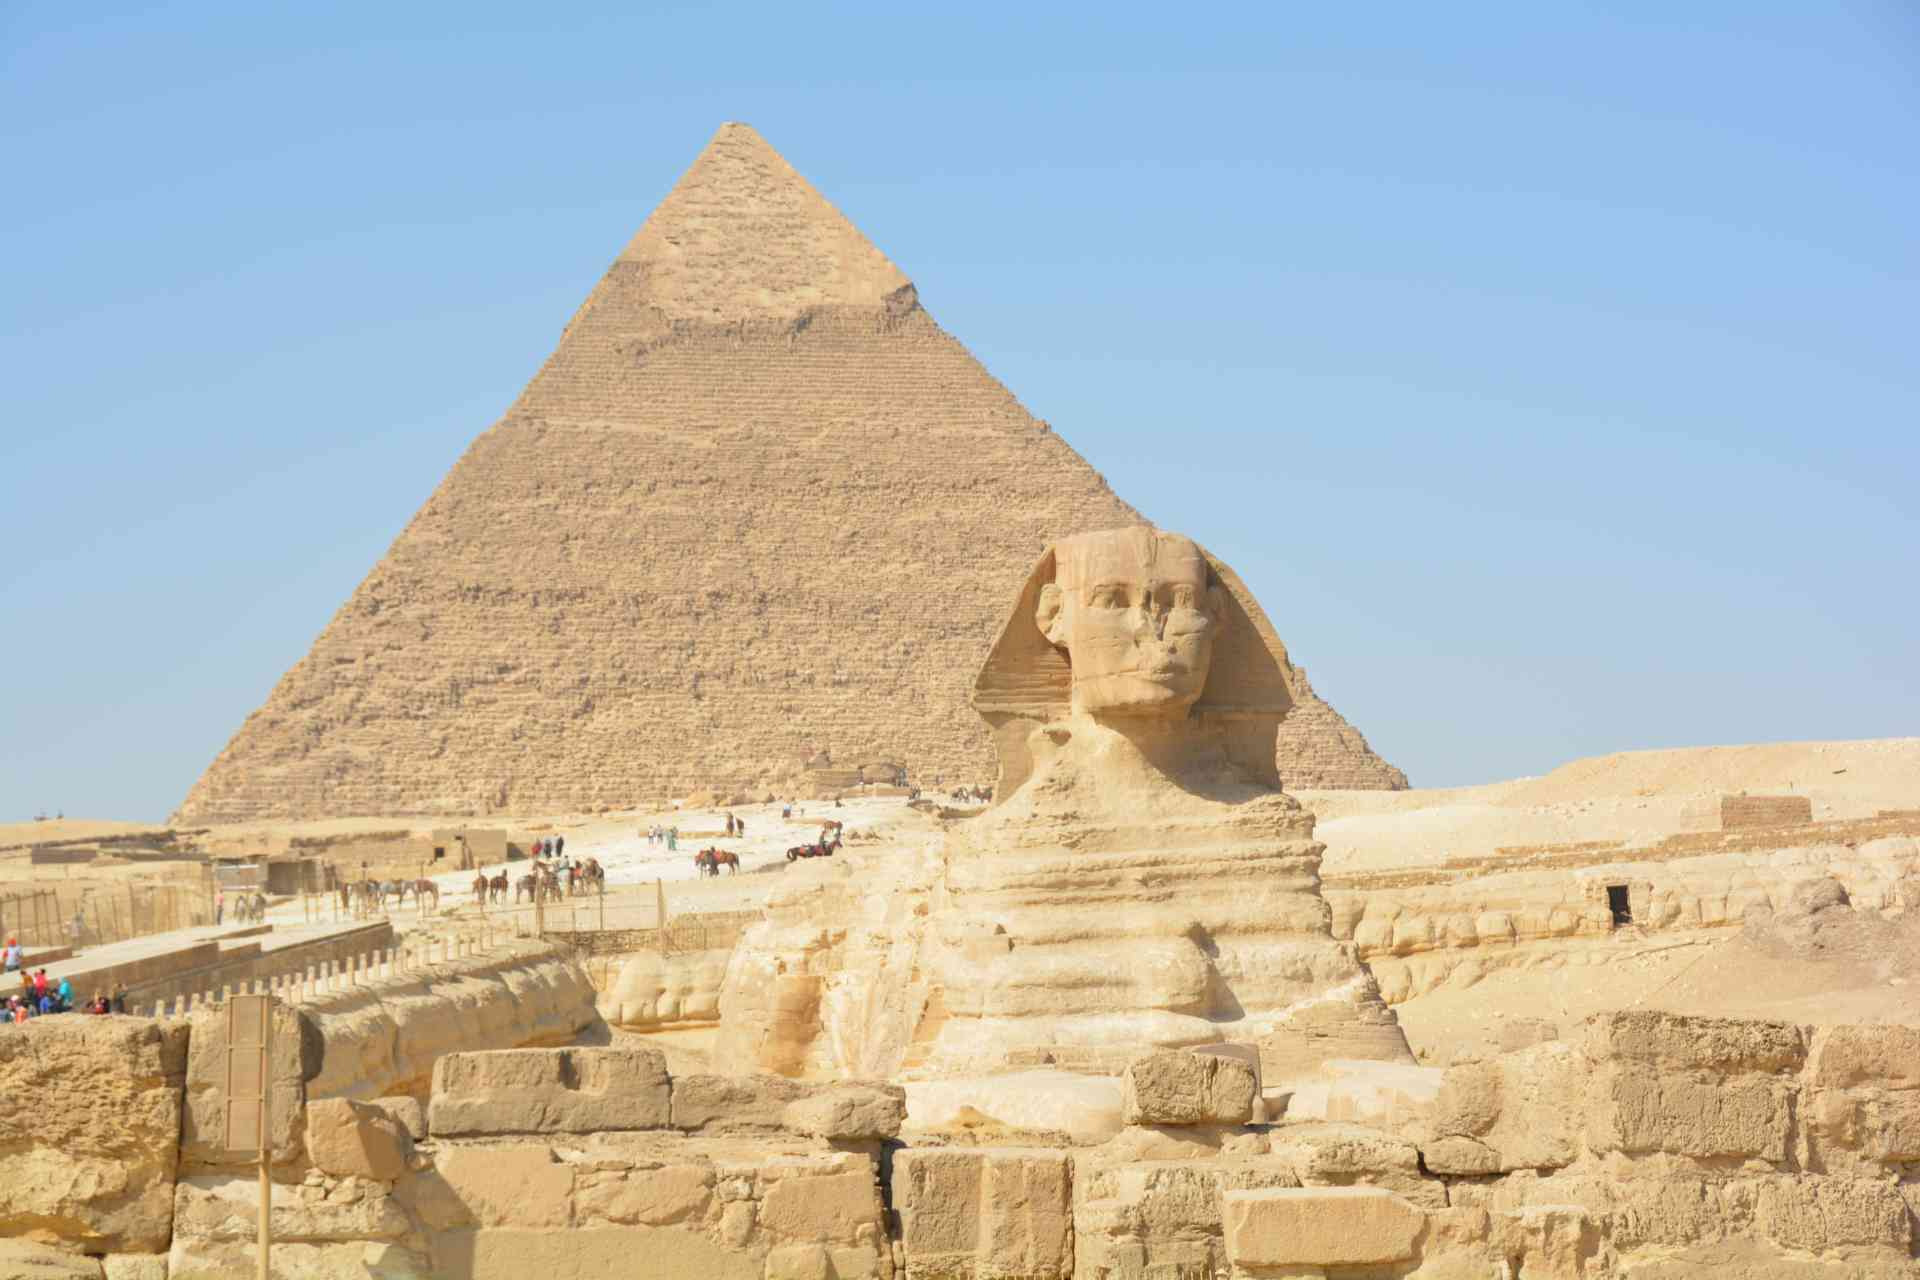 Great Pyramid and Great Sphinx of Giza, Egypt by Pam Frisari